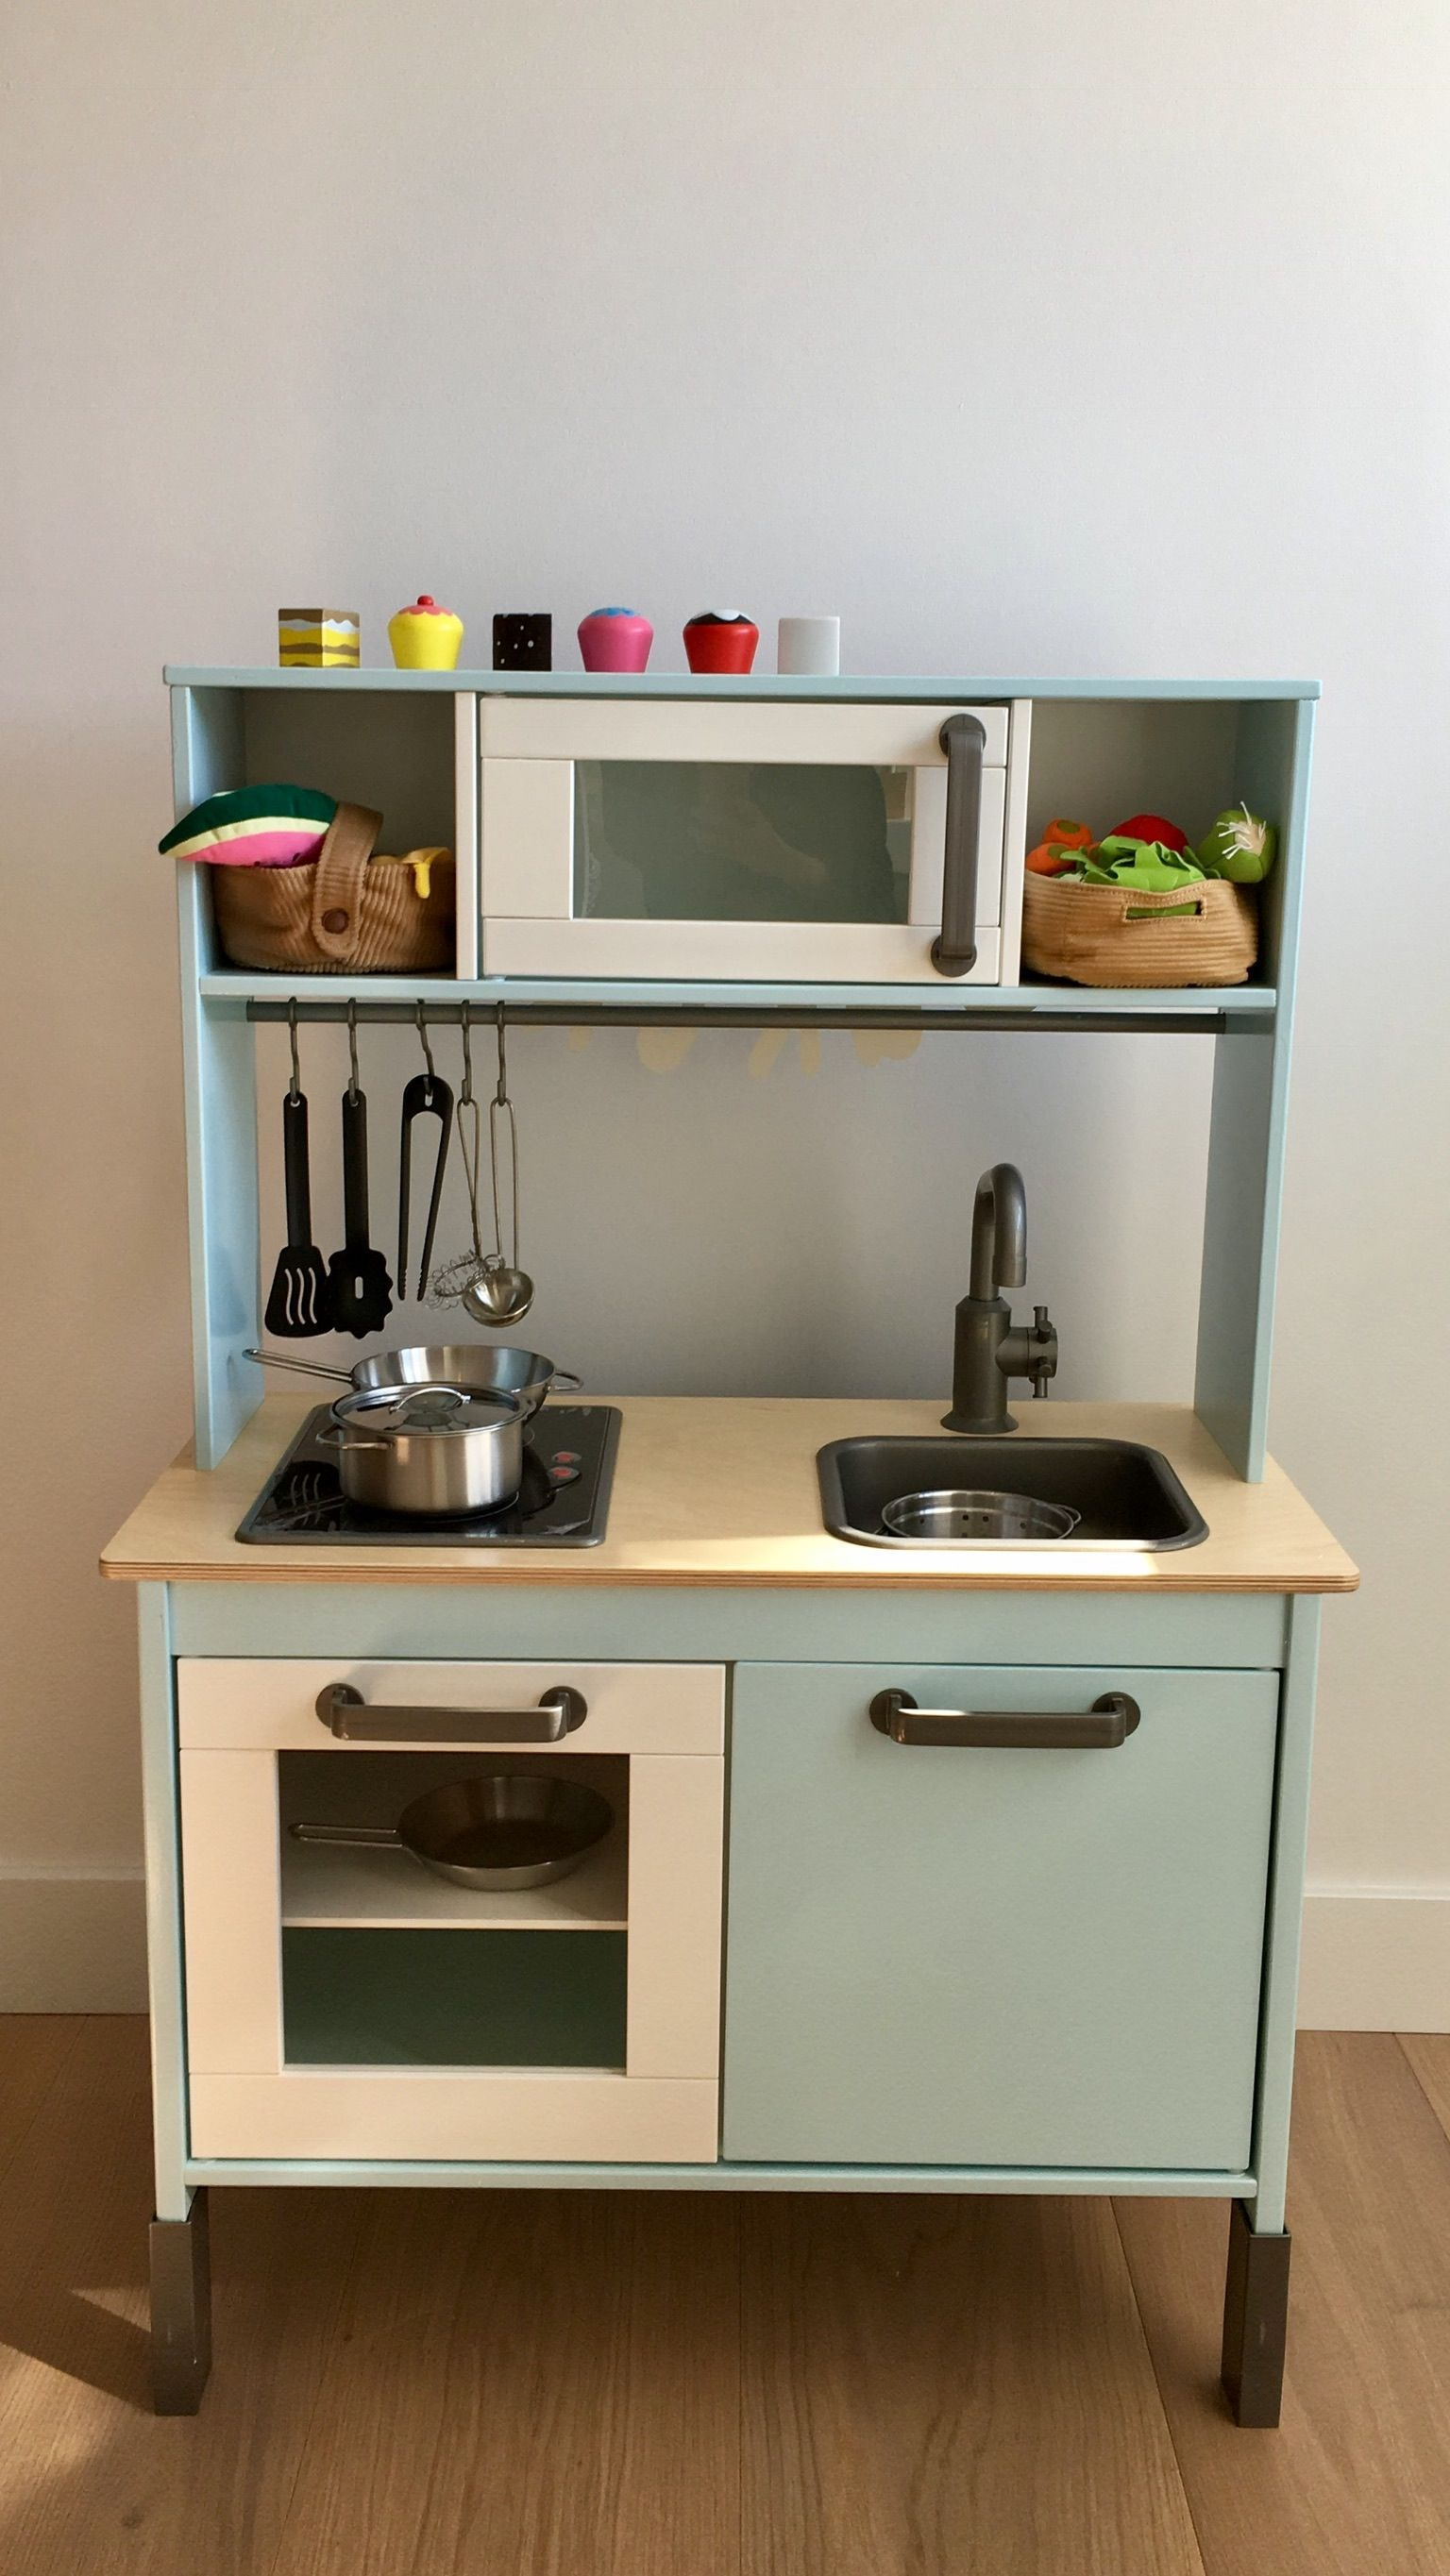 Keuken Decor Accessoires Ikea Duktig Keukentje Pimpen Play Kitchen Pinterest